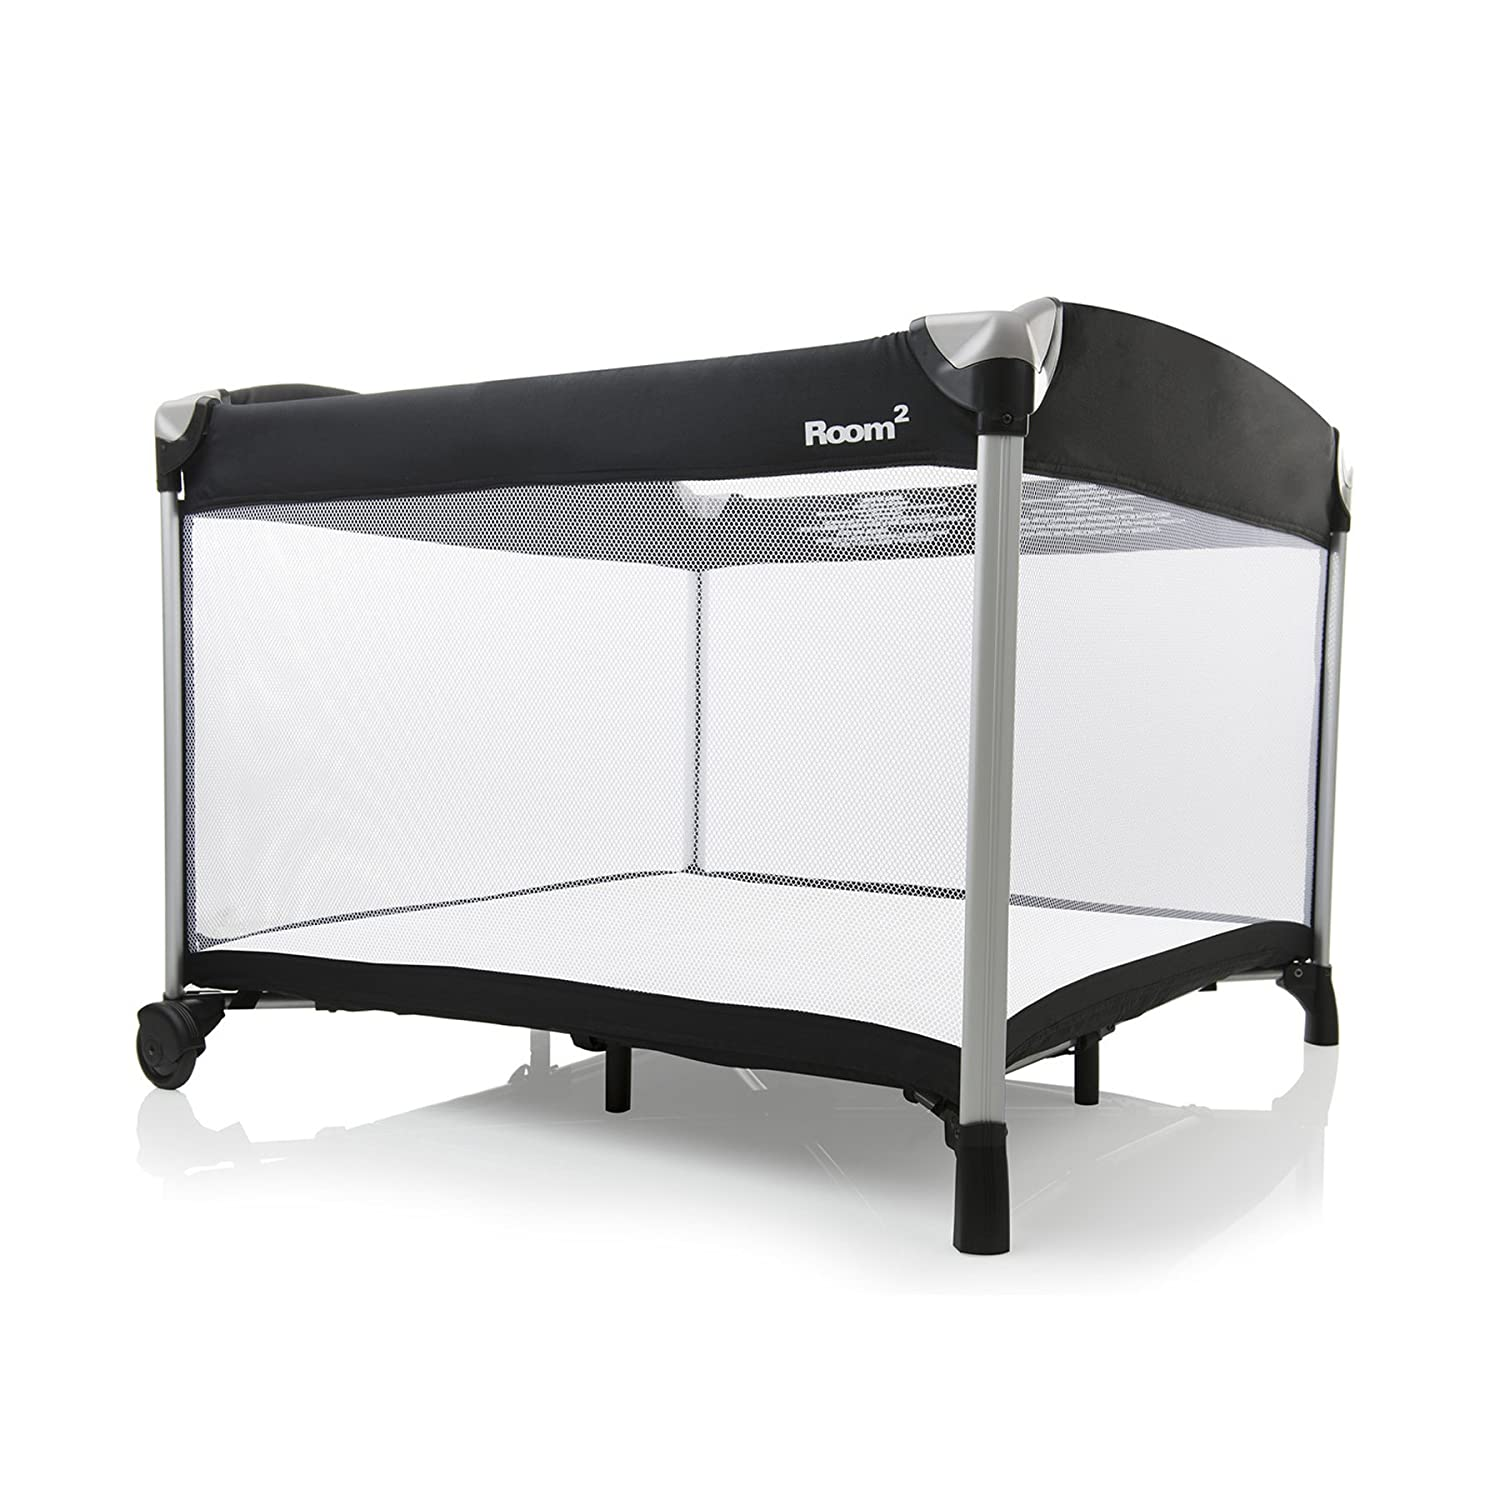 Joovy 7017 Room 2 Playard Black